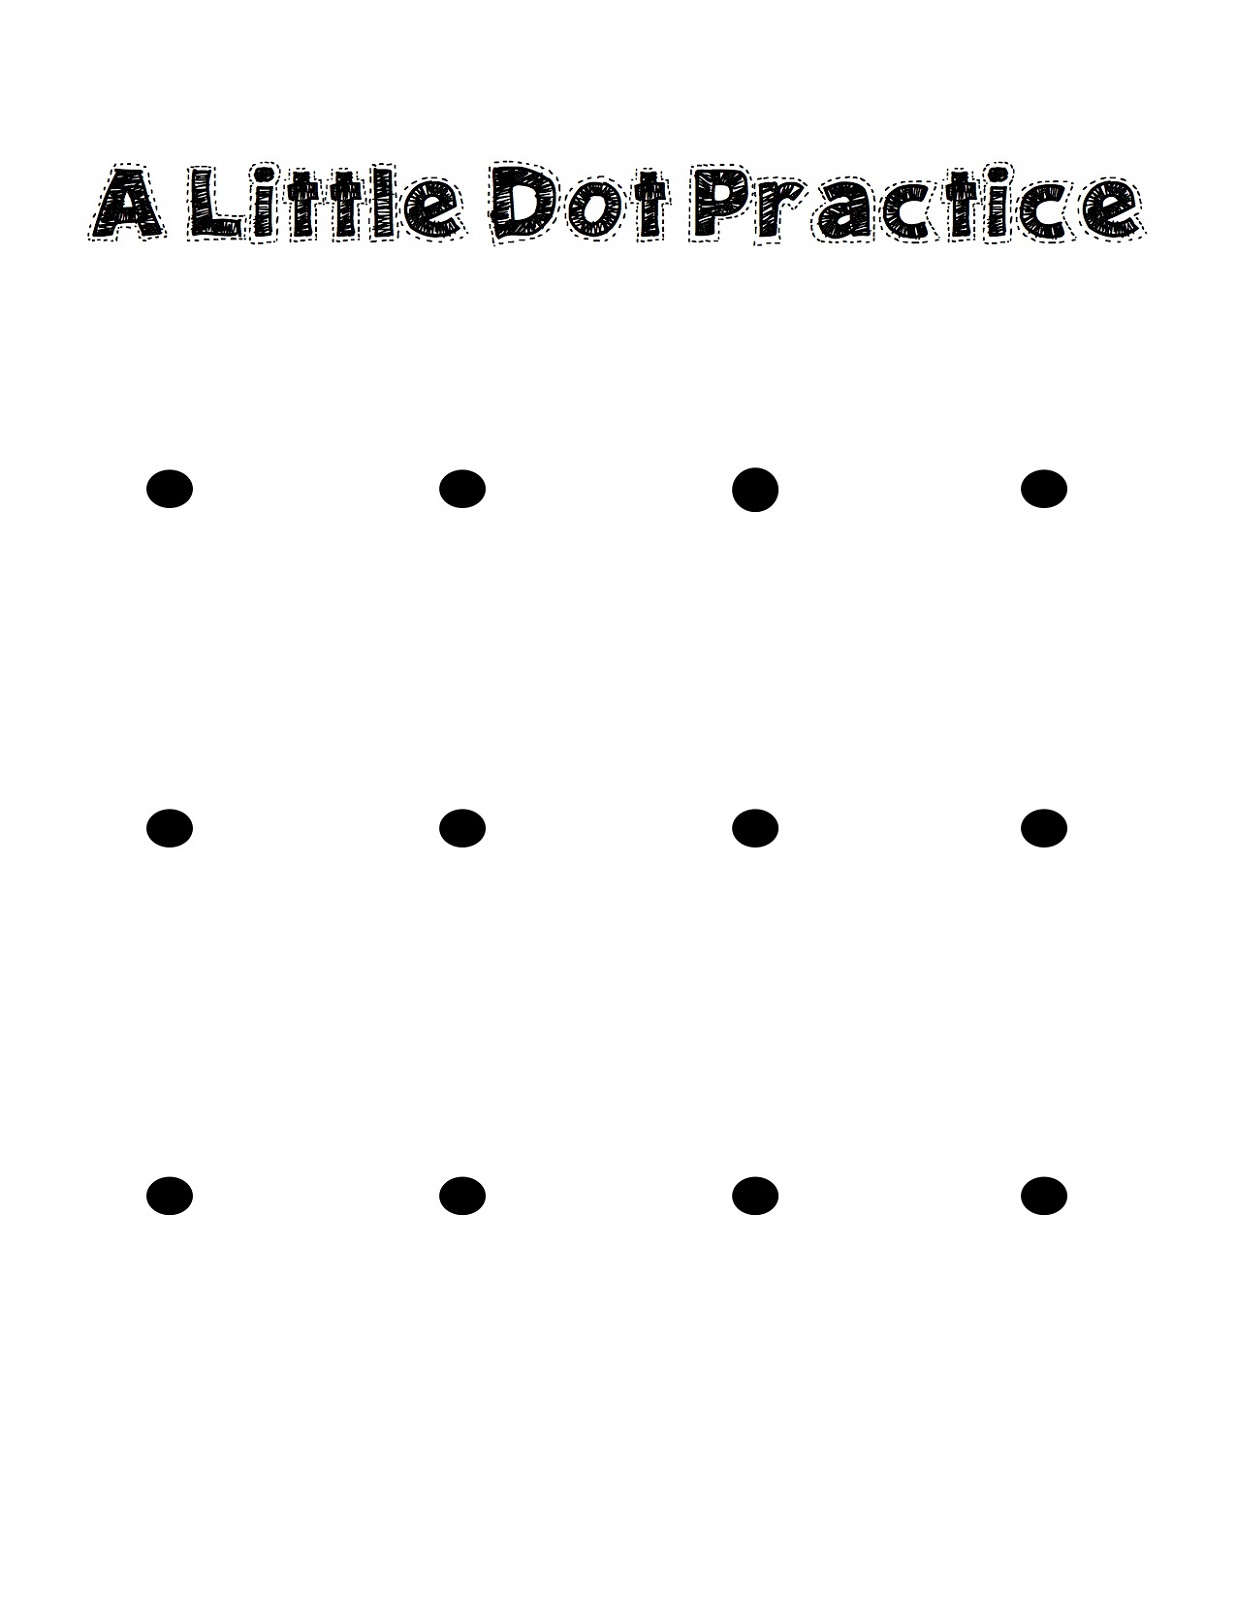 Kids Activities To Print Dot